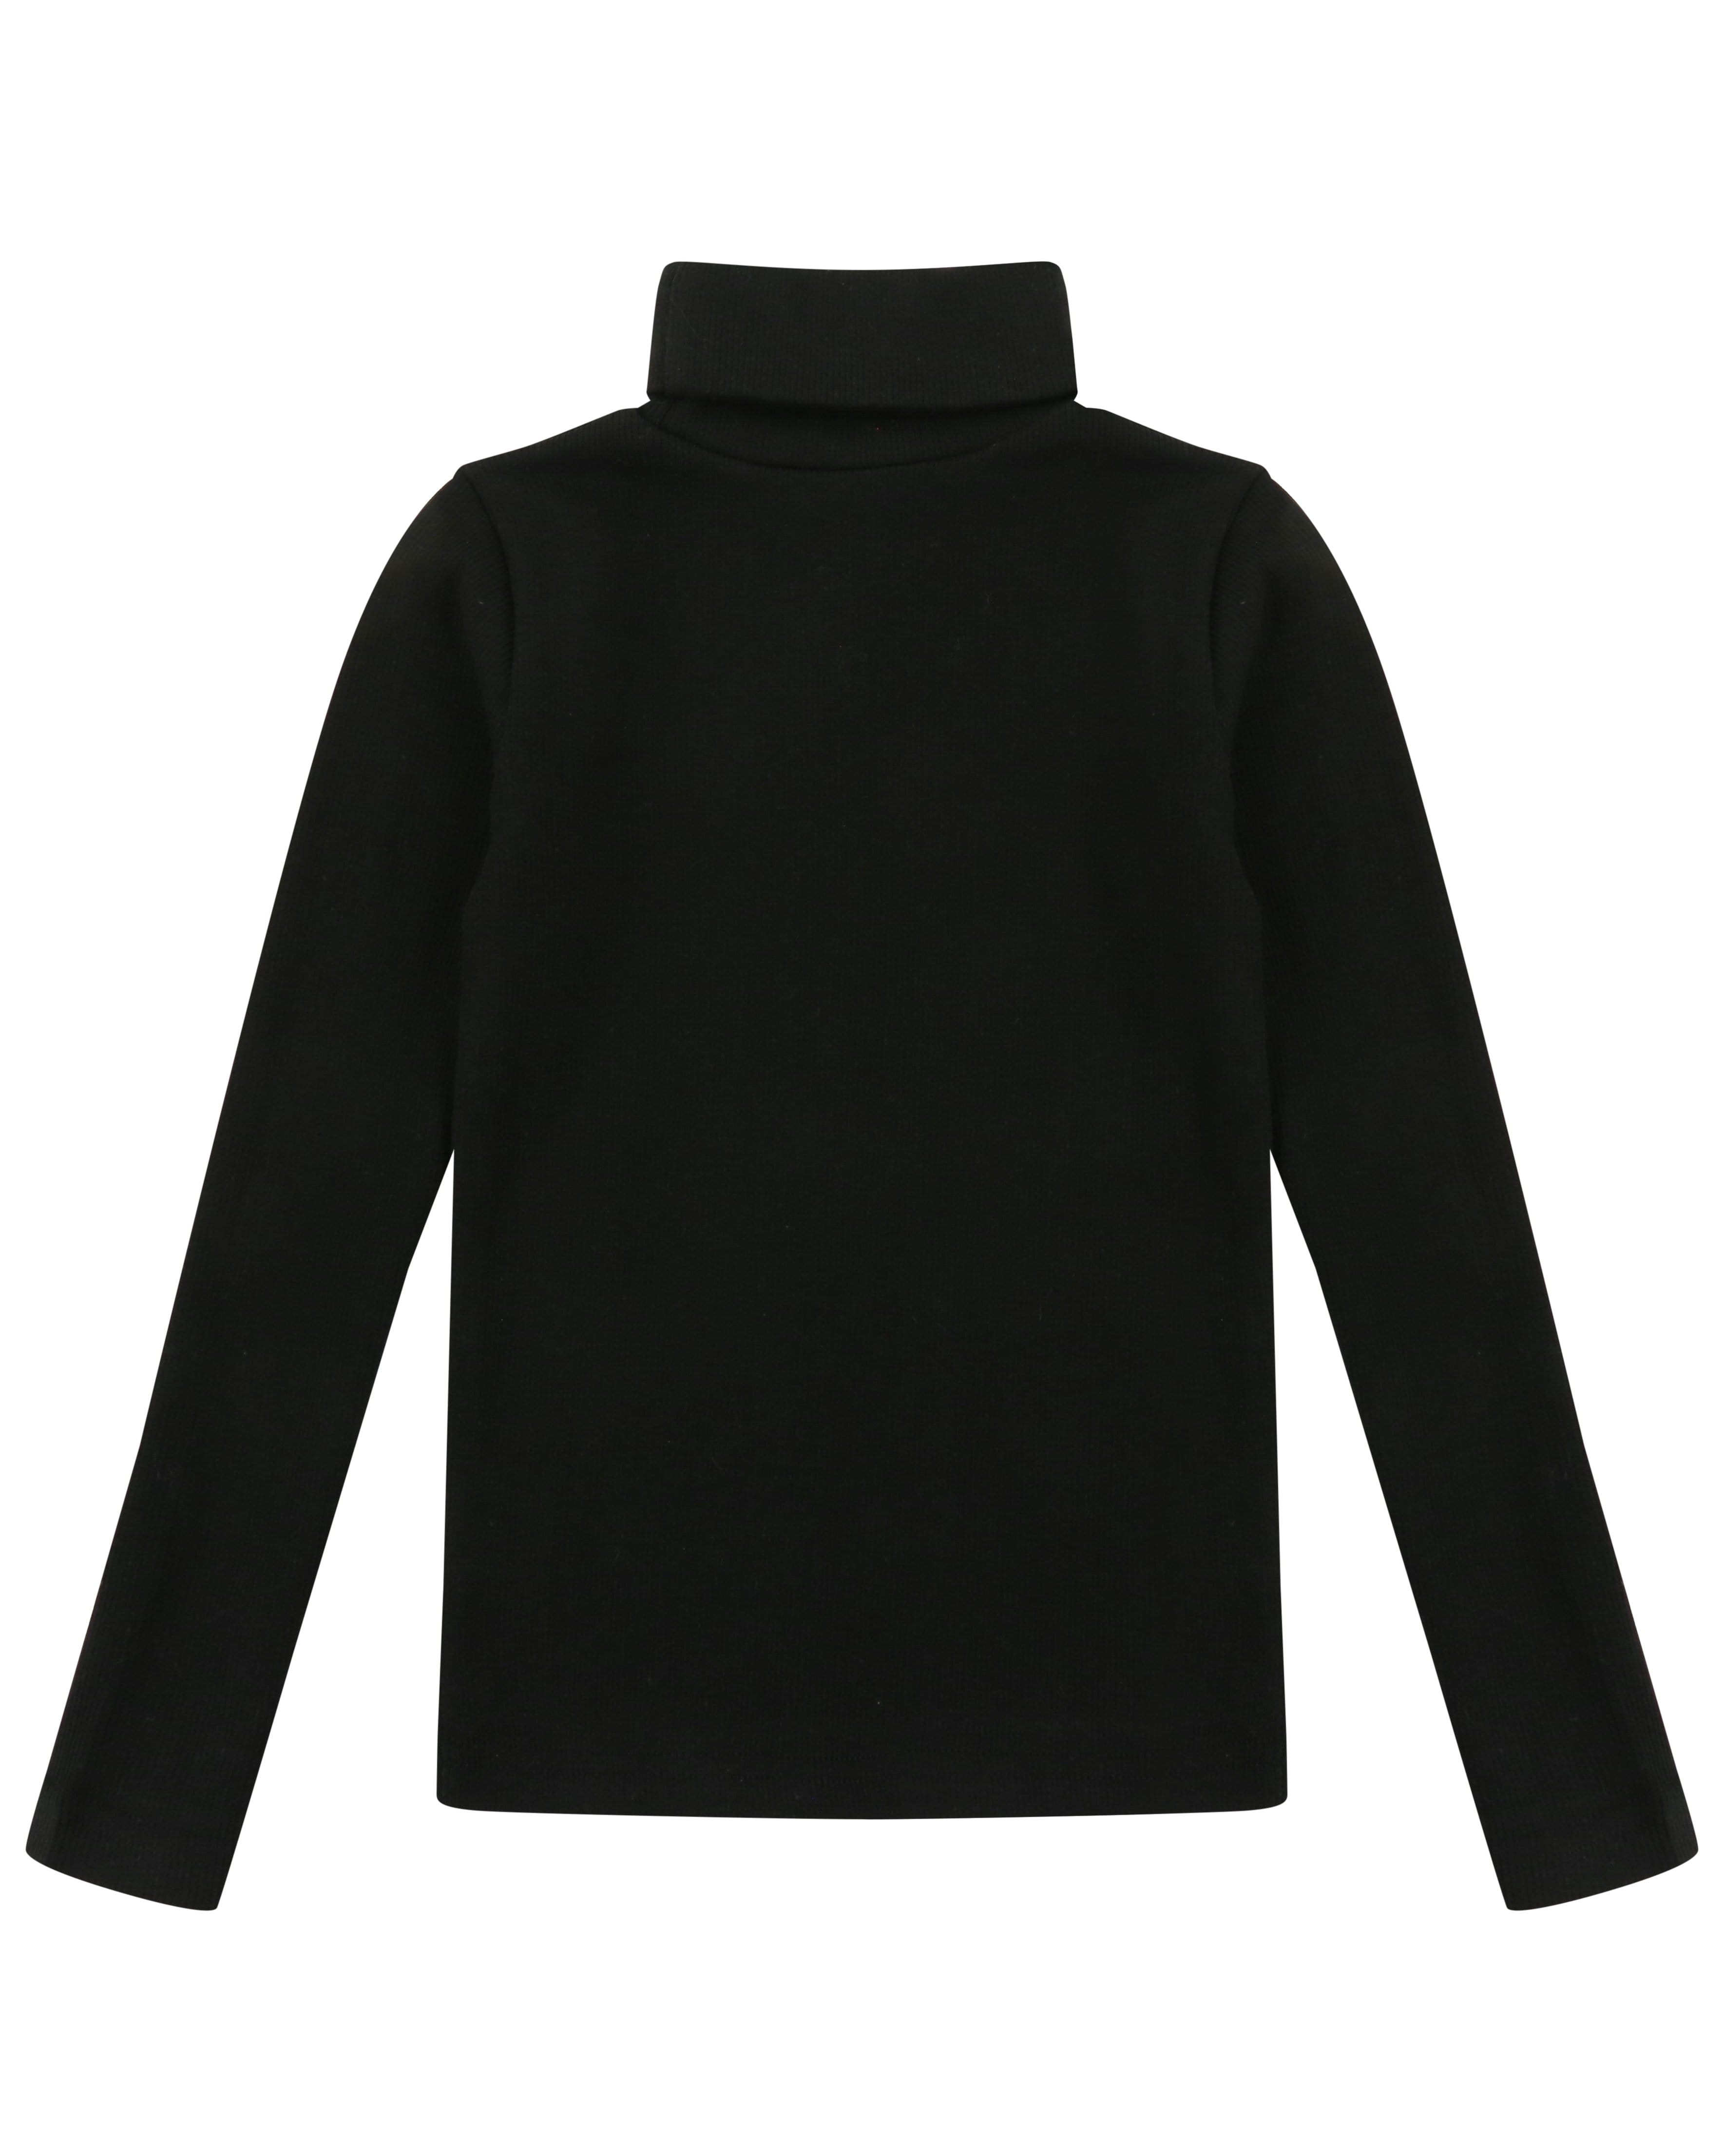 Roll Neck Top Black - Turtledovelondon